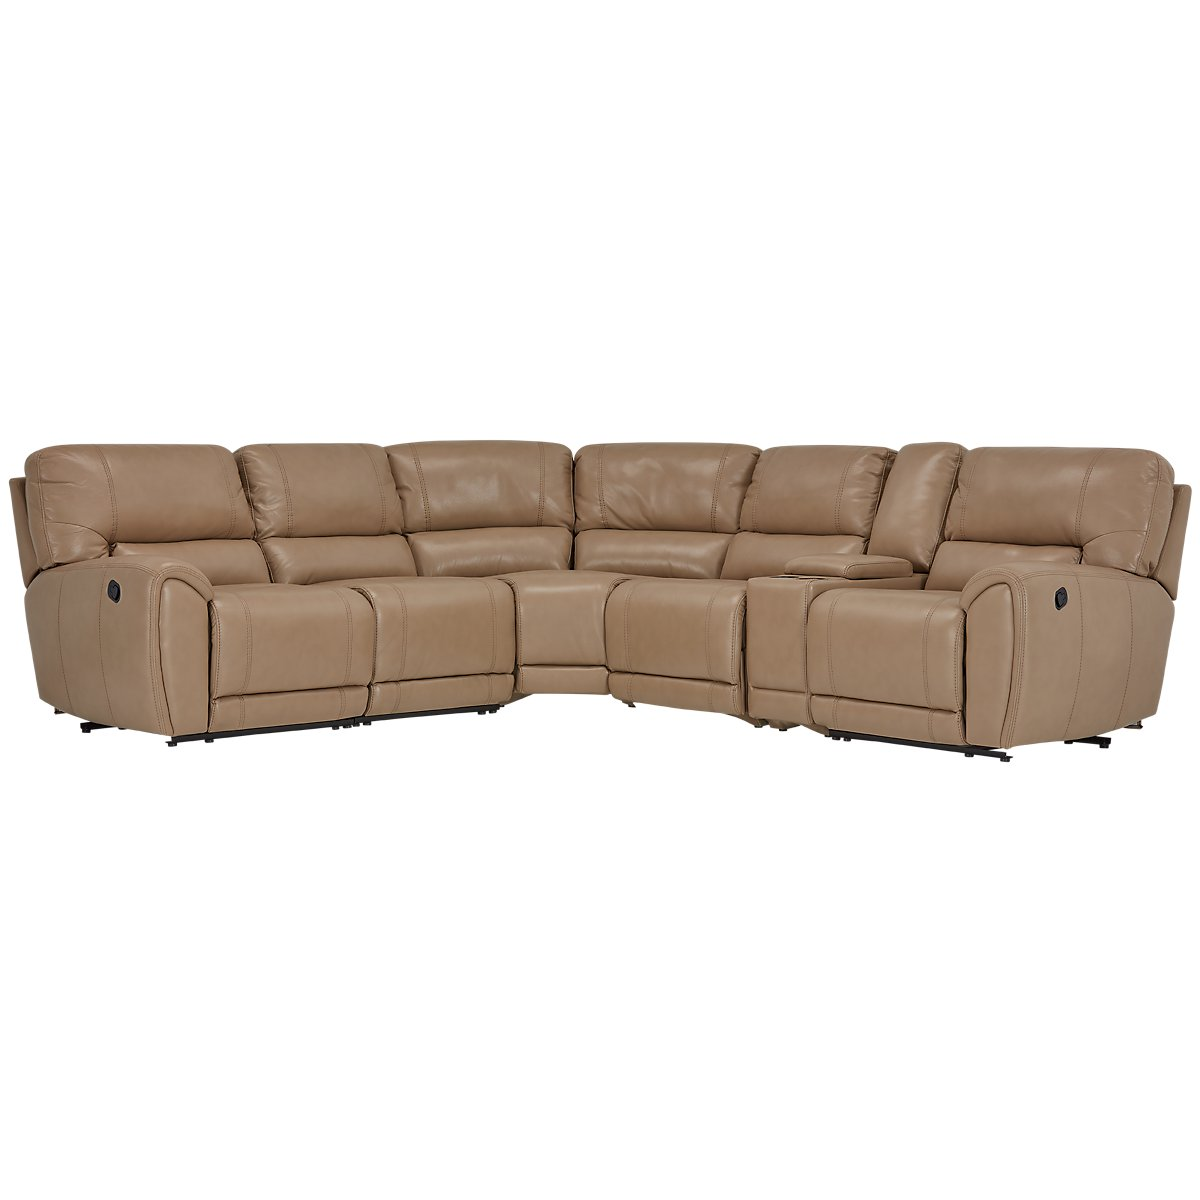 Bailey Sofa Sofa Couch And Loveseat 6 Piece Sectional Ikea